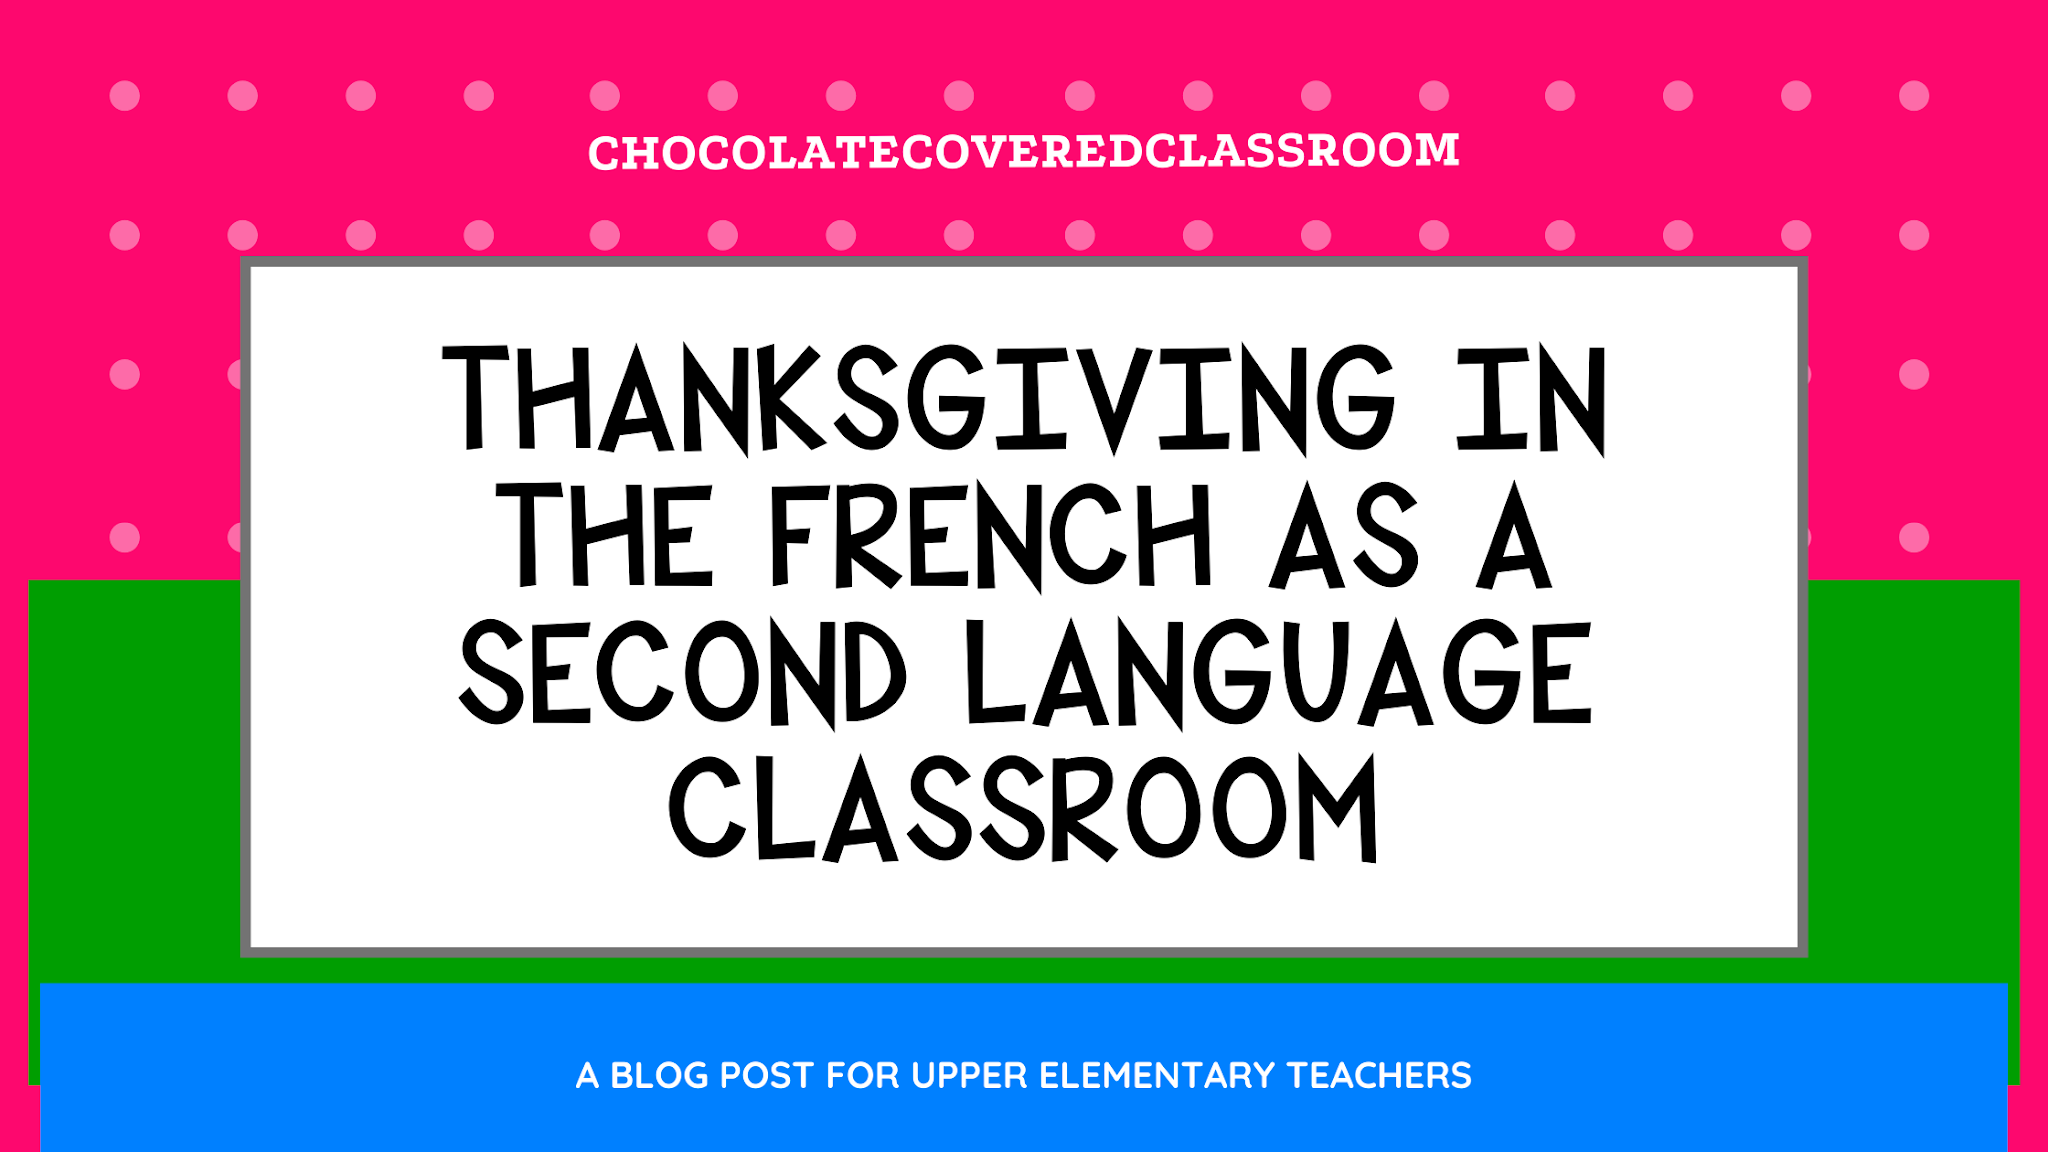 Thanksgiving in the french as a second language fsl classroom l'action de grace